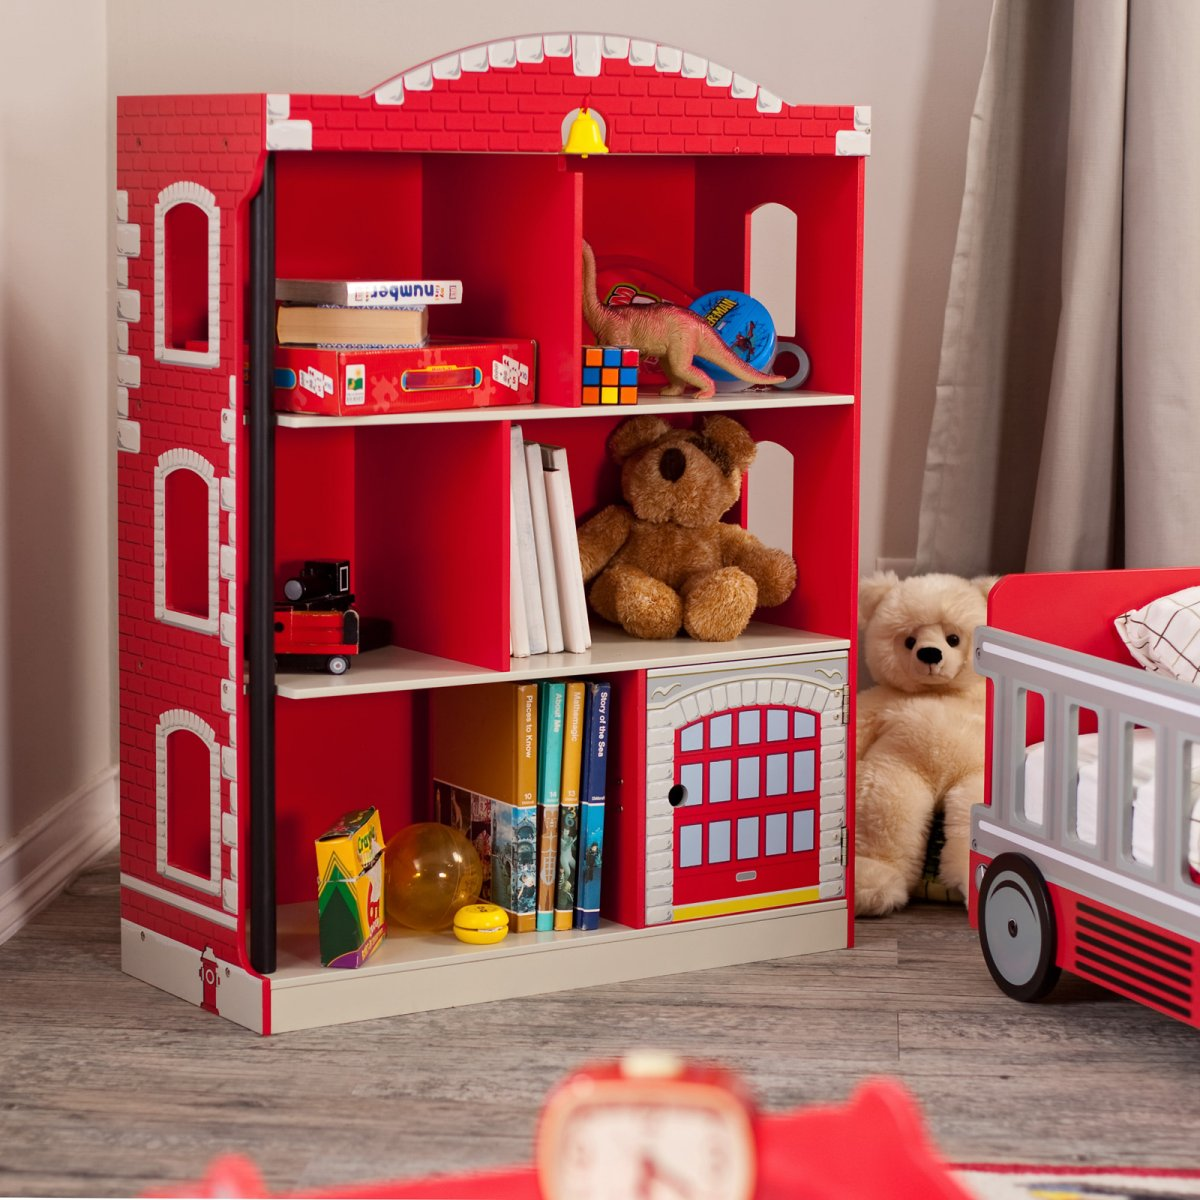 Adorable Dollhouse Bookshelves for Kids to Decorate the Room  Ideas 4 Homes